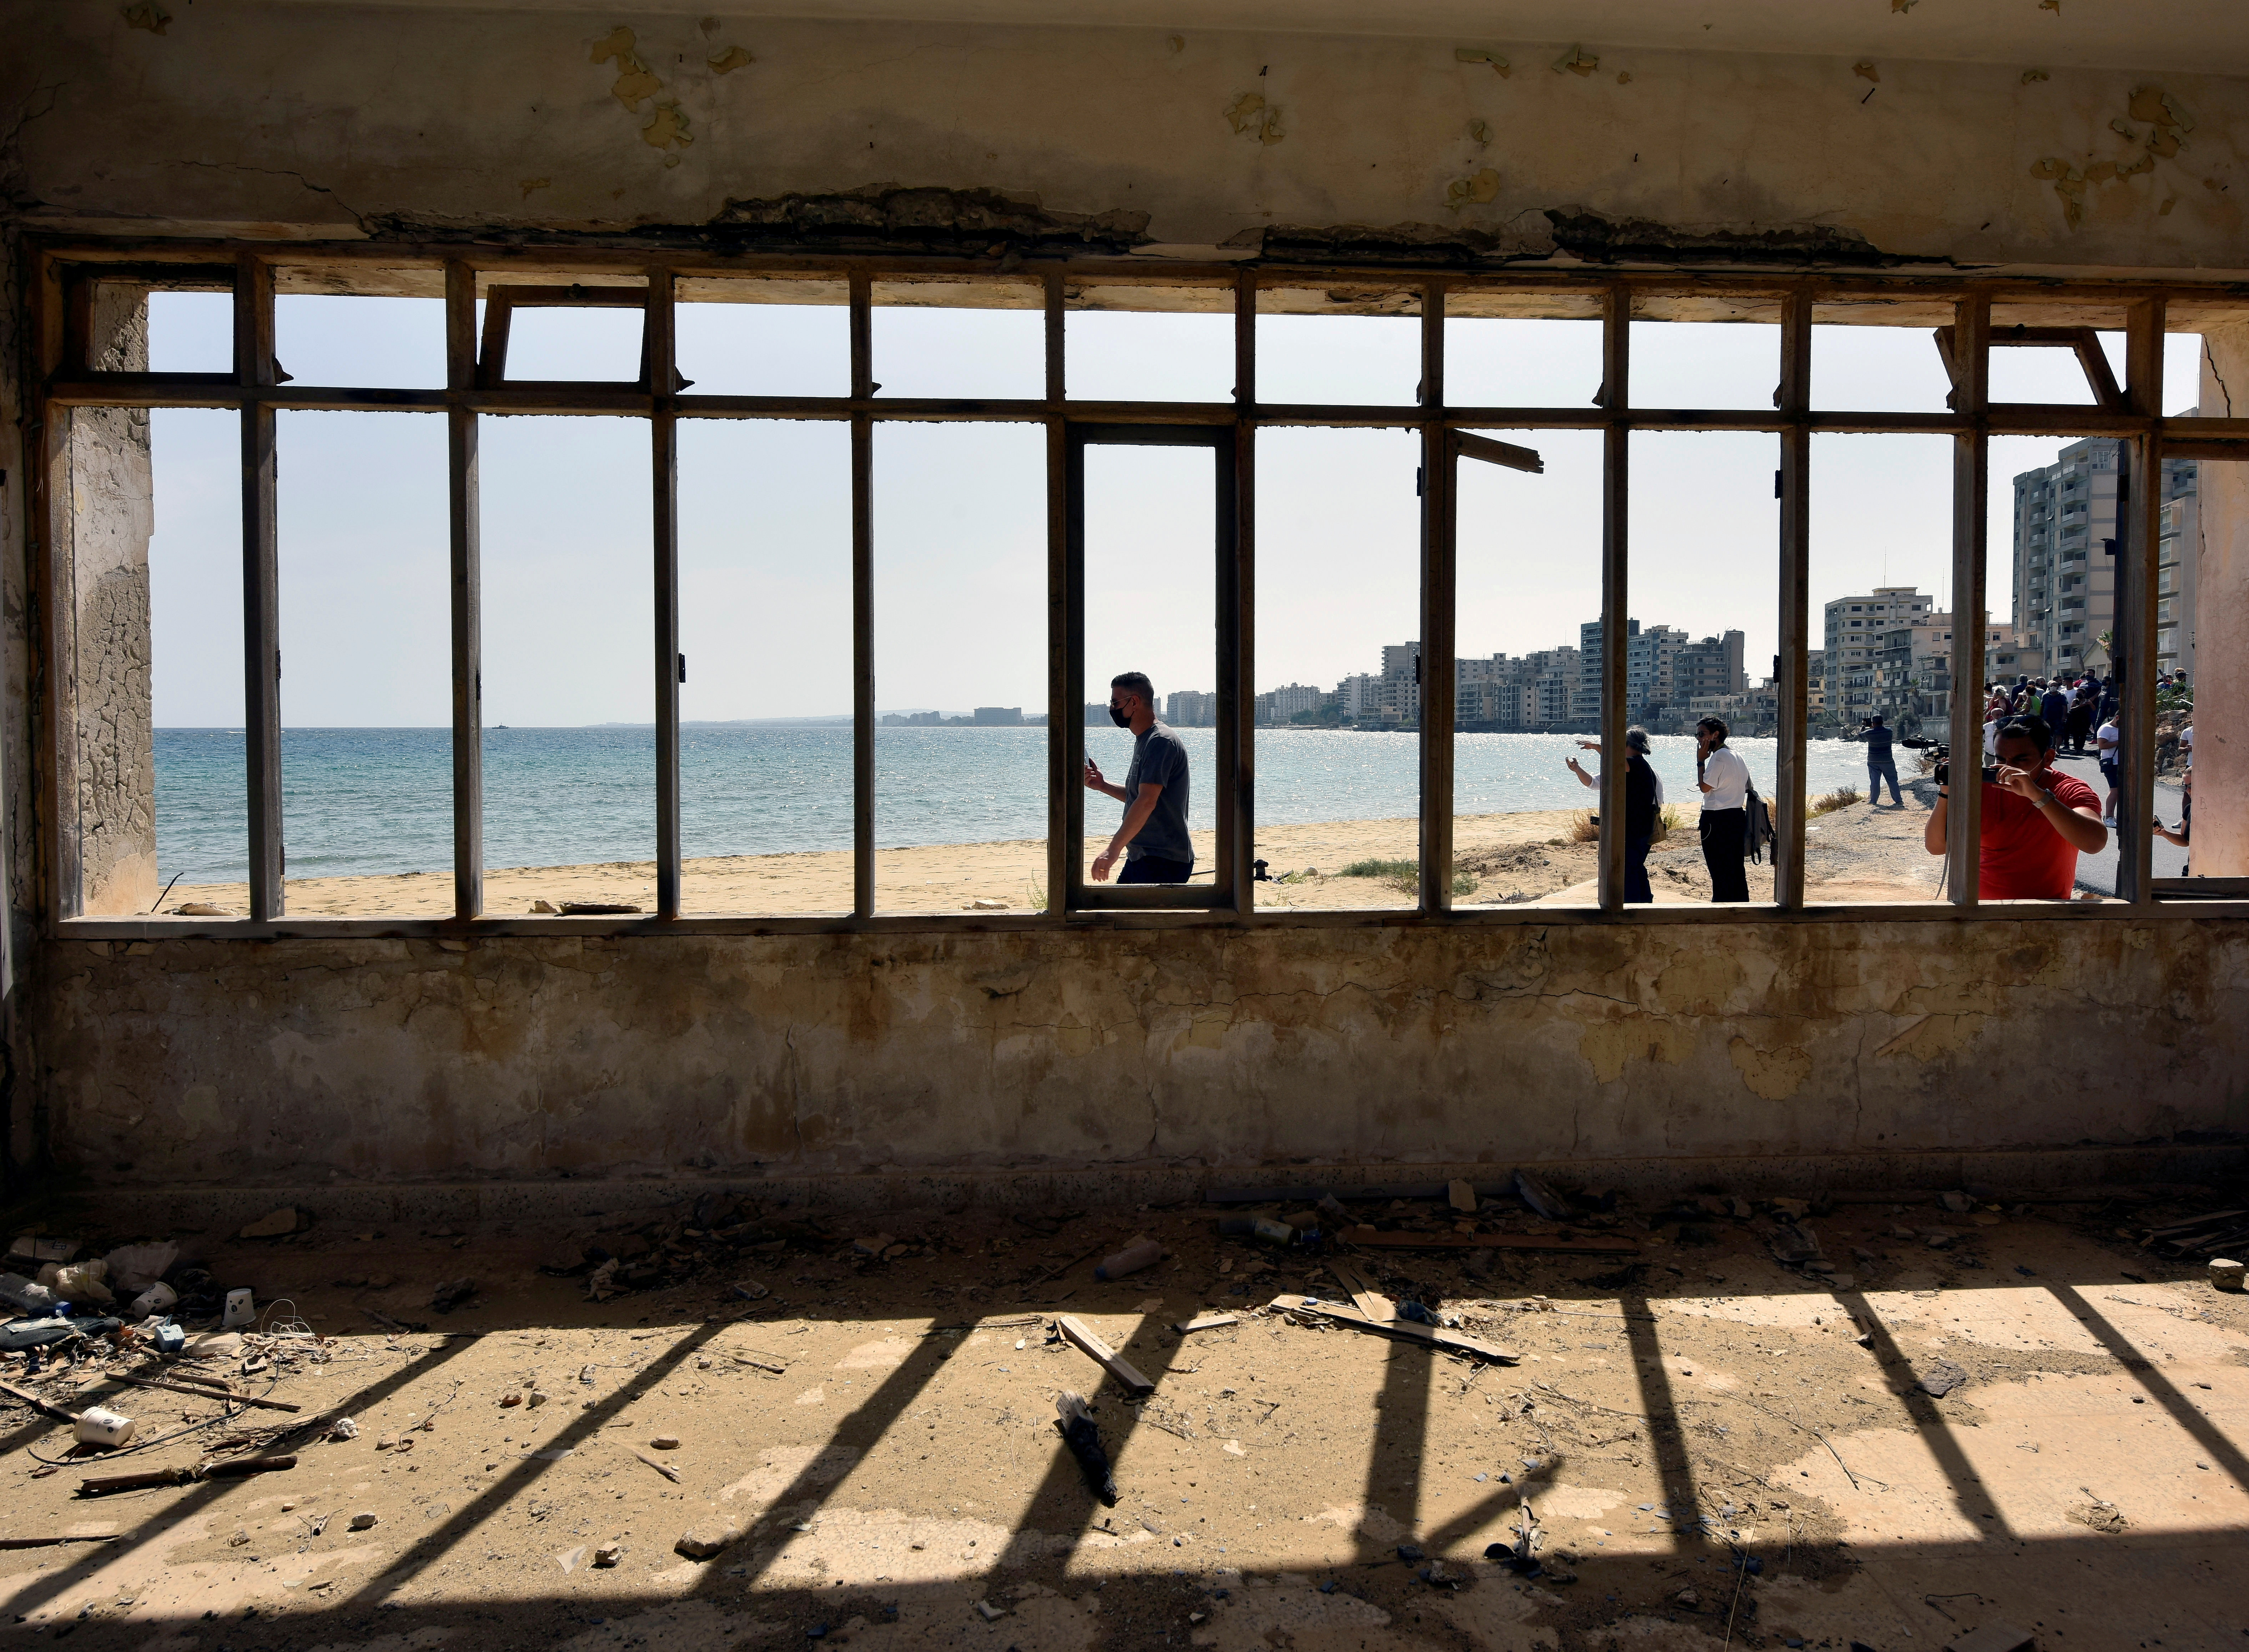 People walk on a beach inside an area fenced off by the Turkish military since 1974 in the abandoned coastal area of Varosha, a suburb of the town of Famagusta in Turkish-controlled northern Cyprus, October 8, 2020. REUTERS/Harun Ucar/File Photo